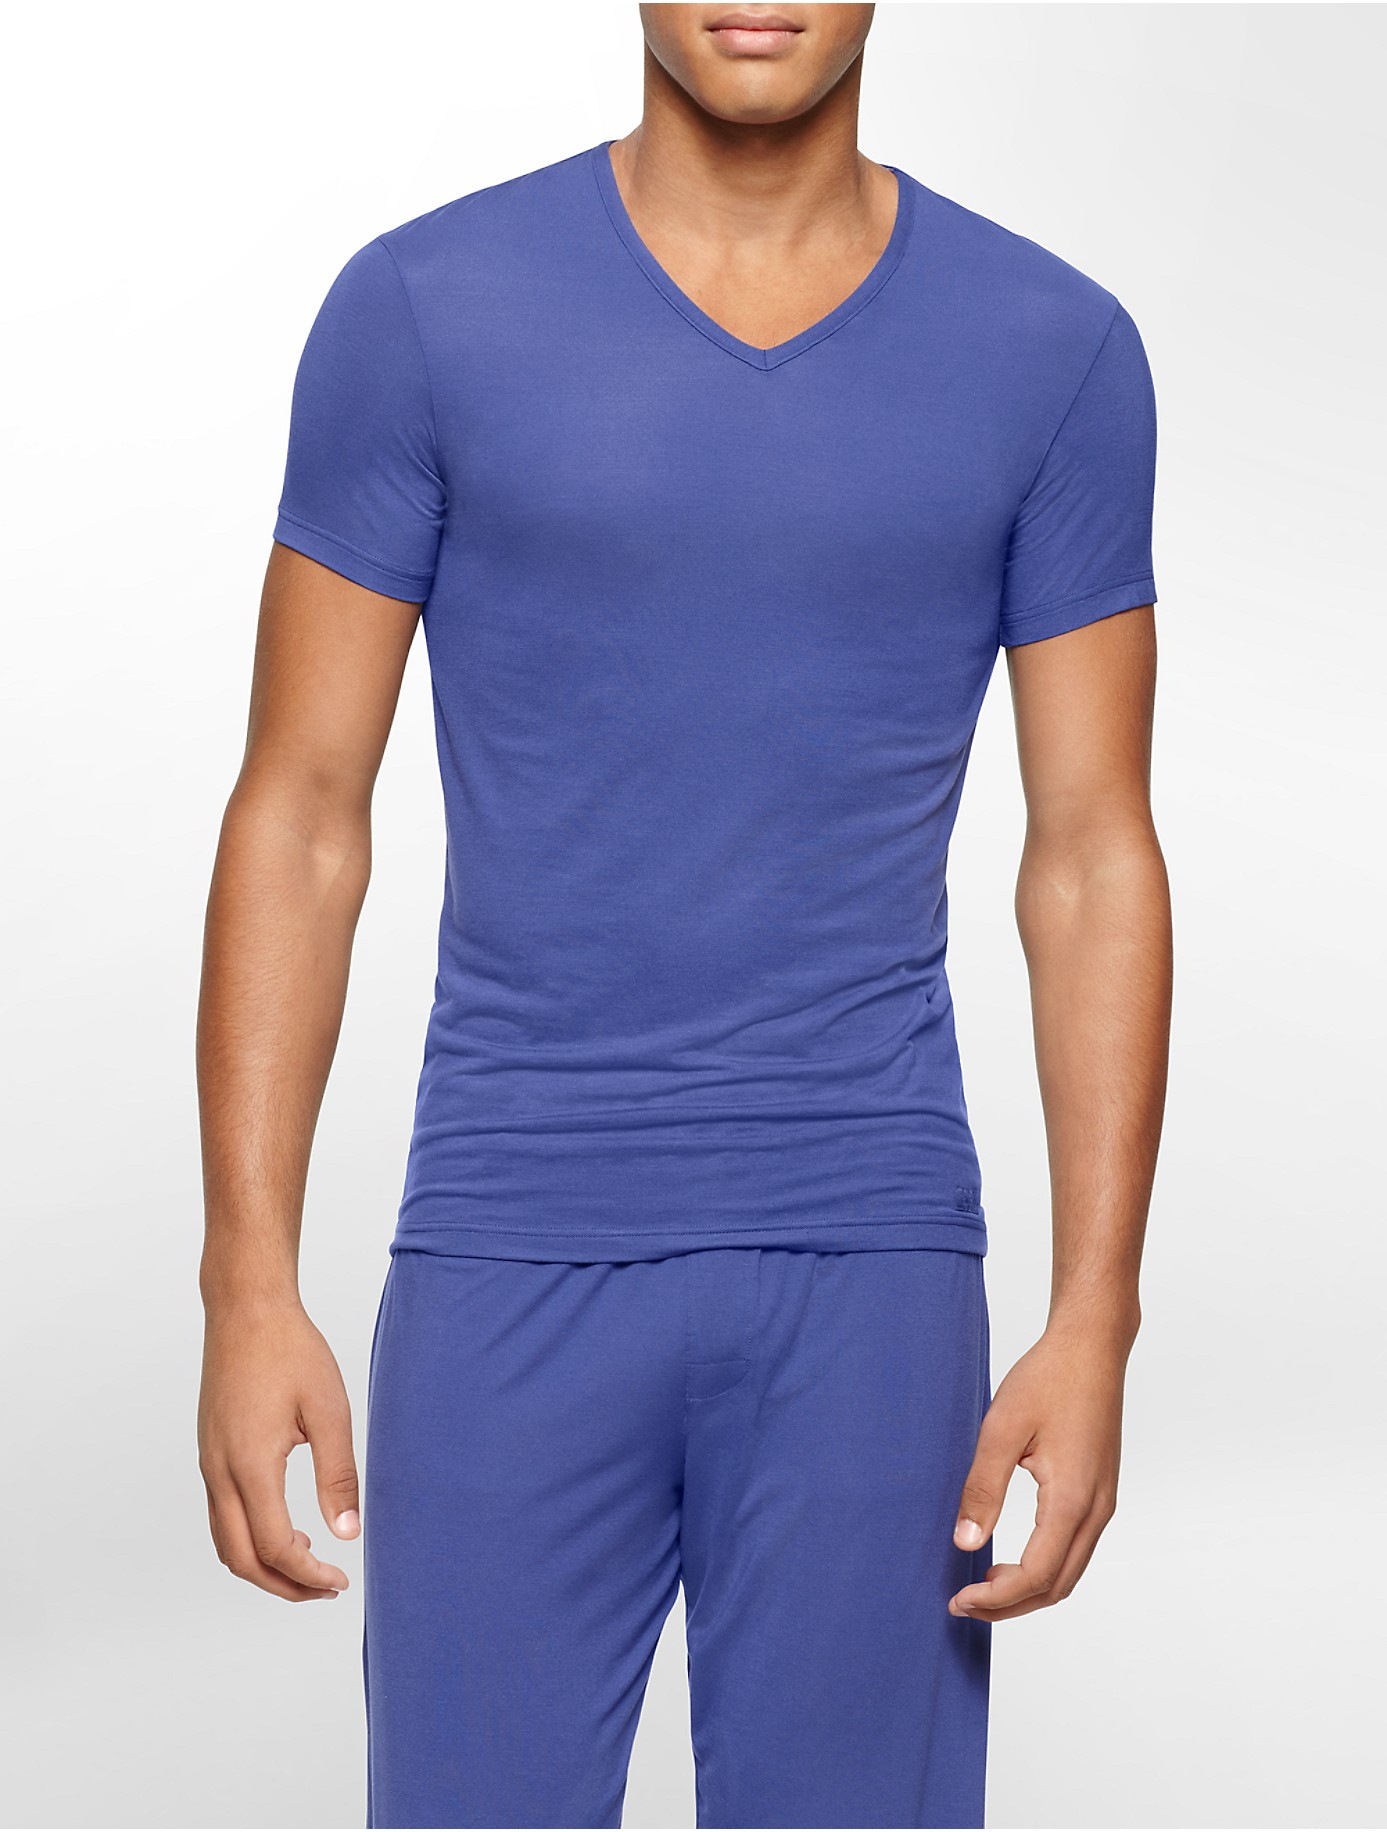 Lyst calvin klein underwear body modal v neck t shirt in for Modal t shirts mens